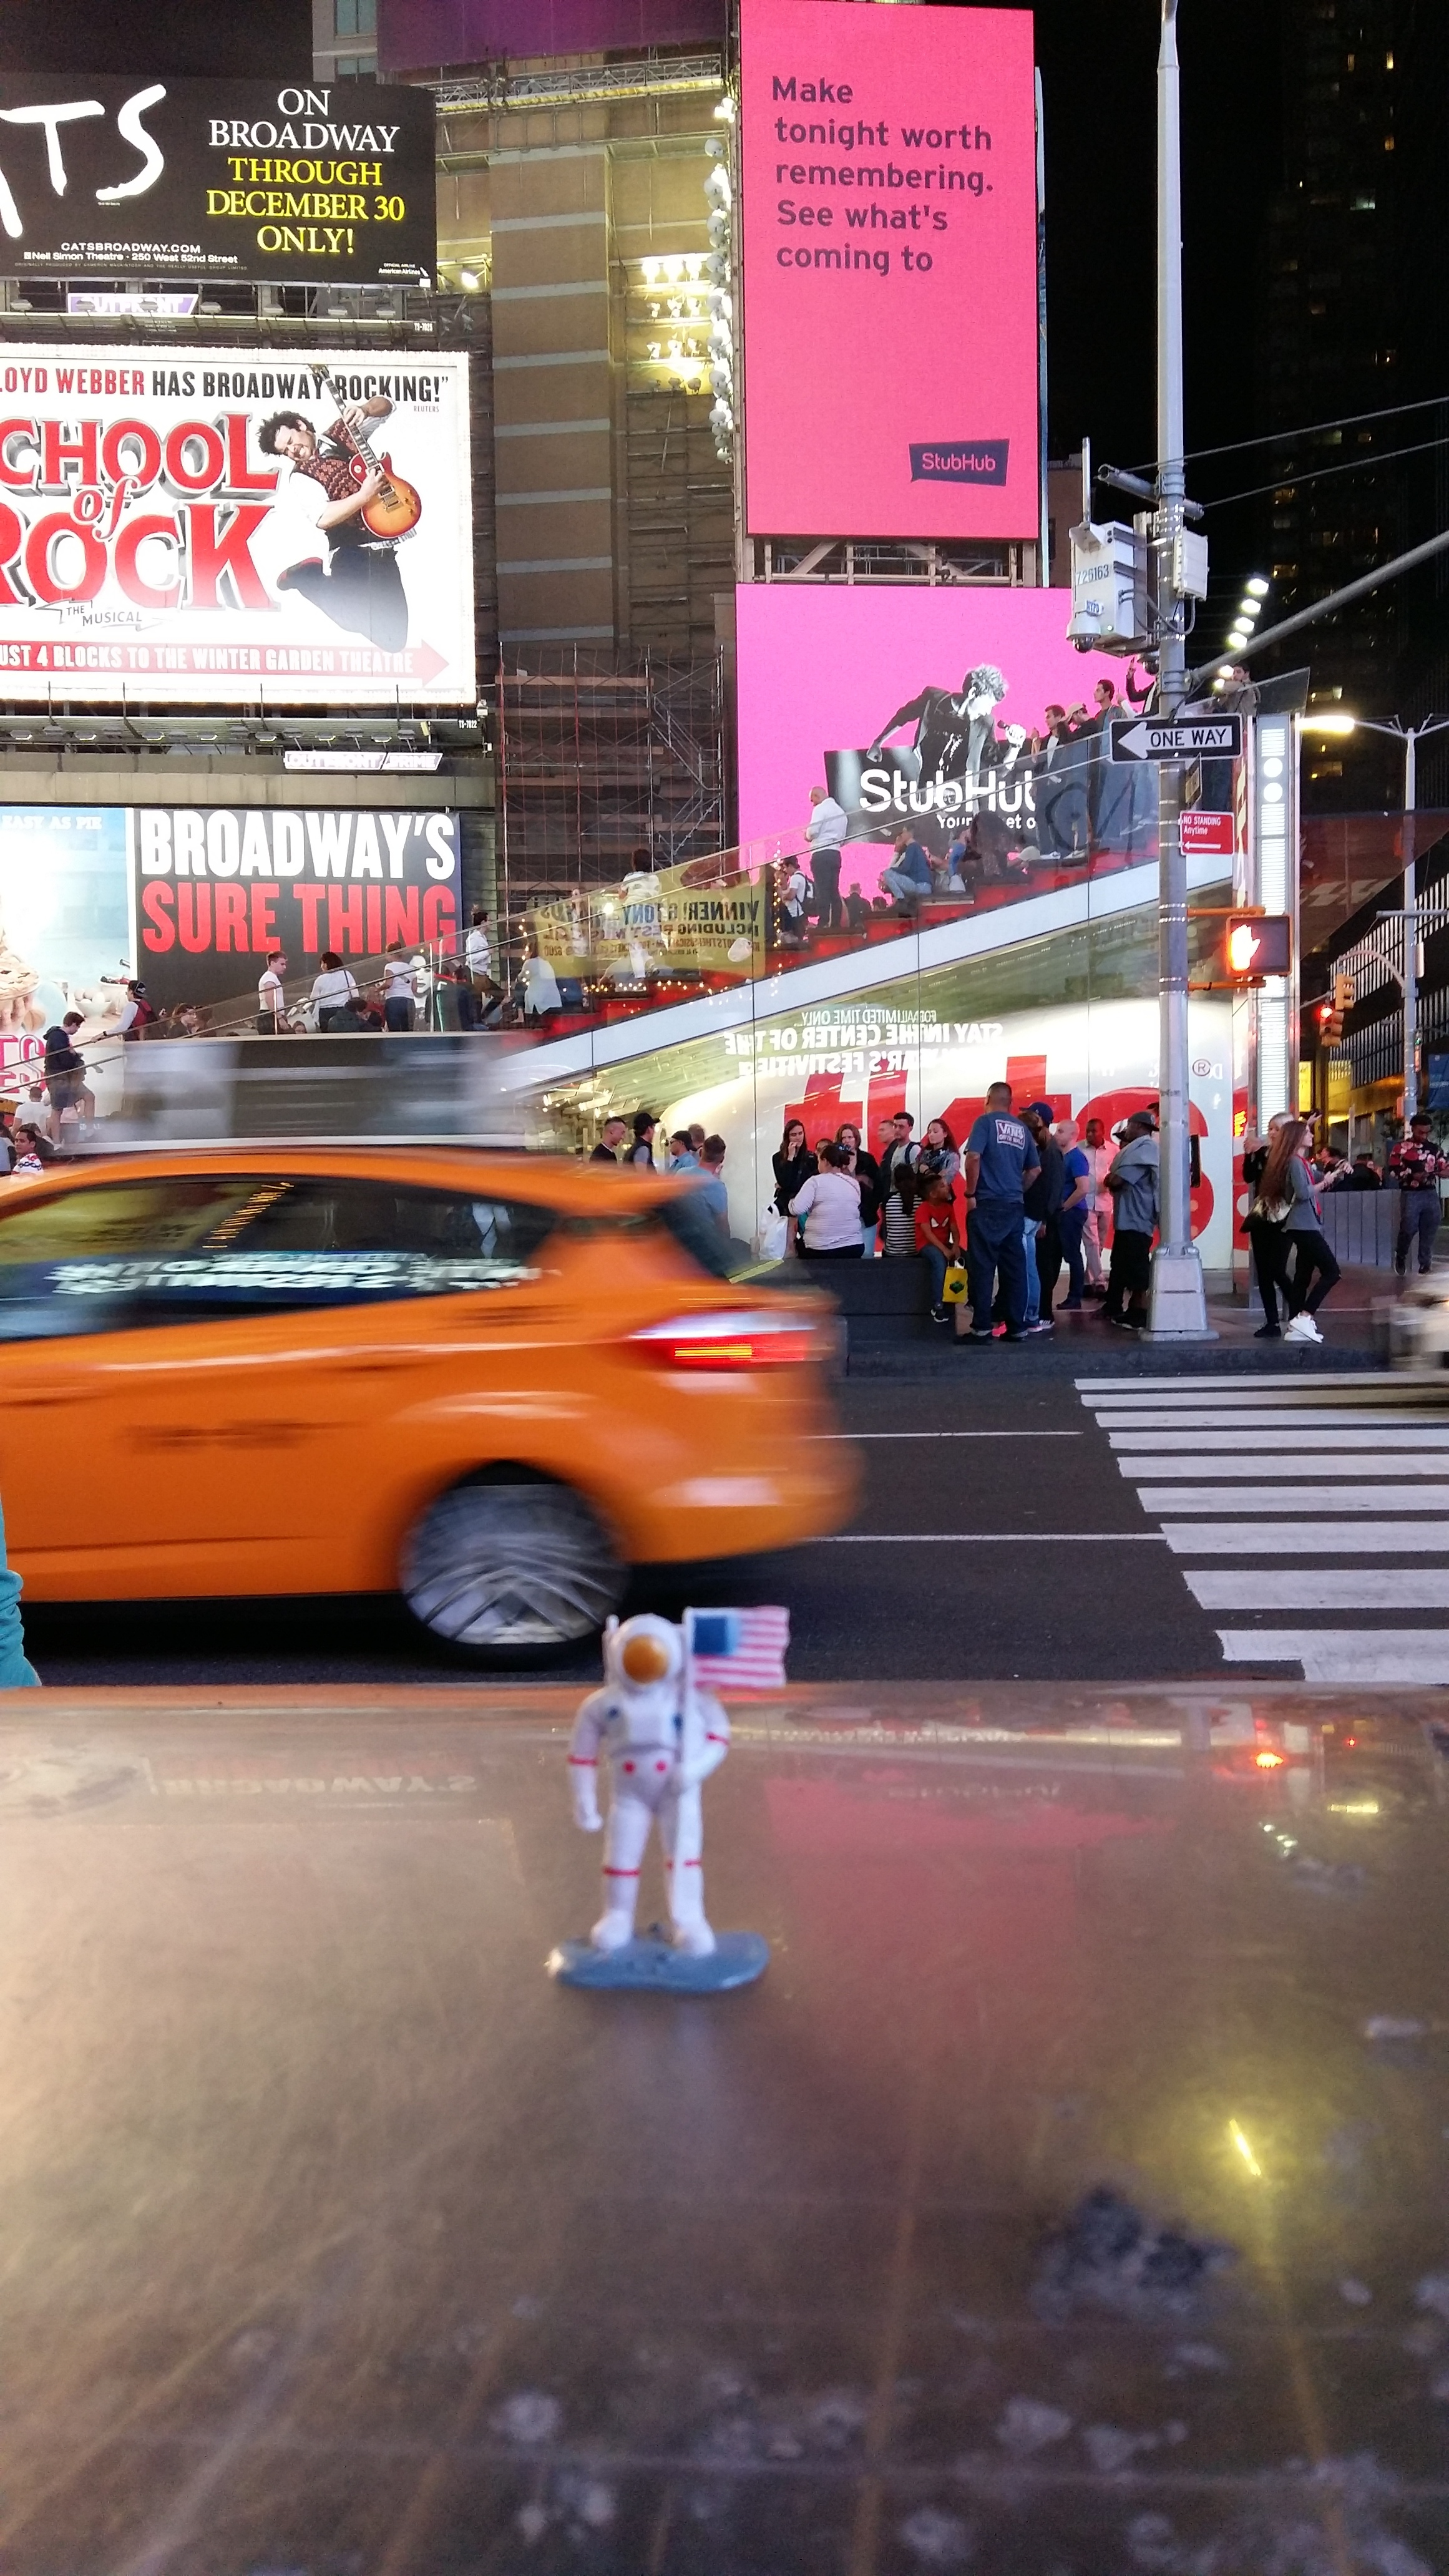 JJ the astronaut is in Times Square!